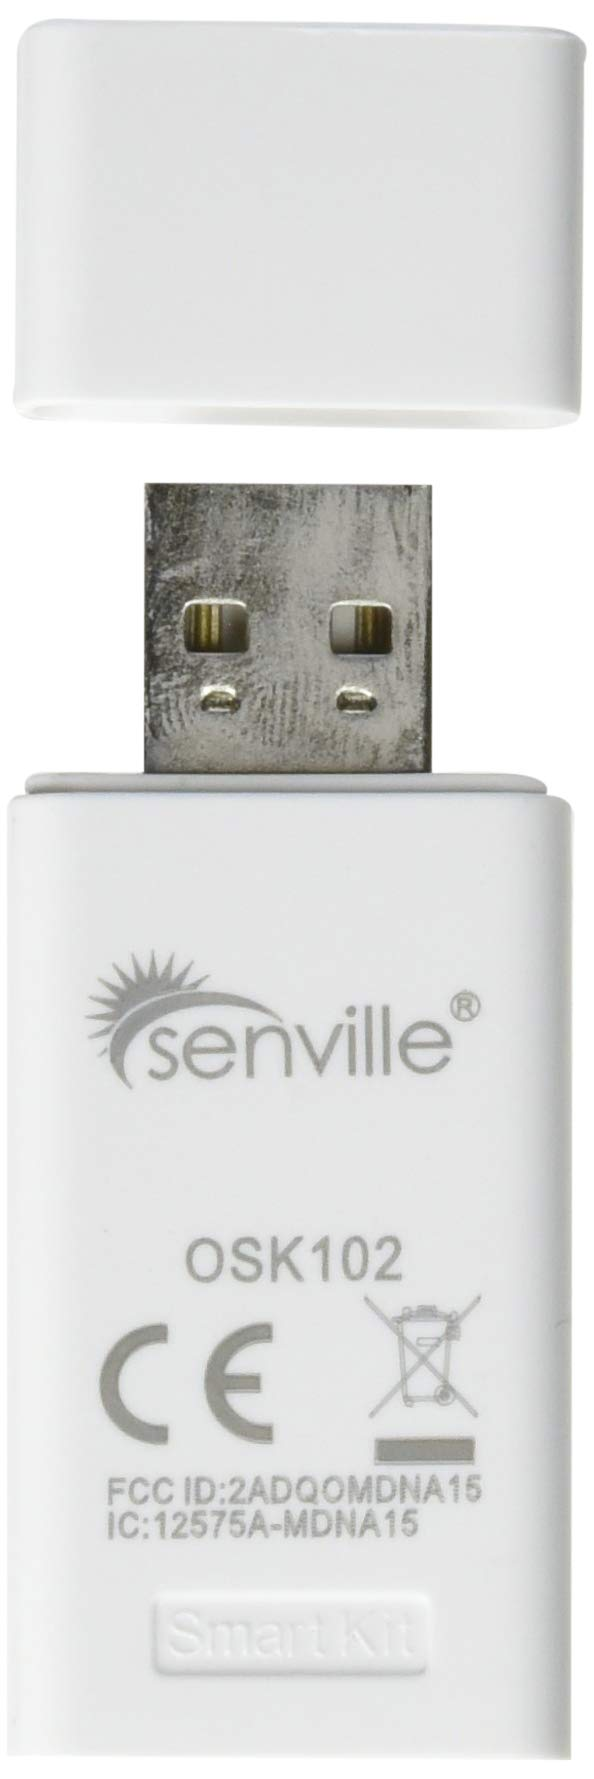 Senville Smart WiFi Kit USB for iOS and Android by Senville